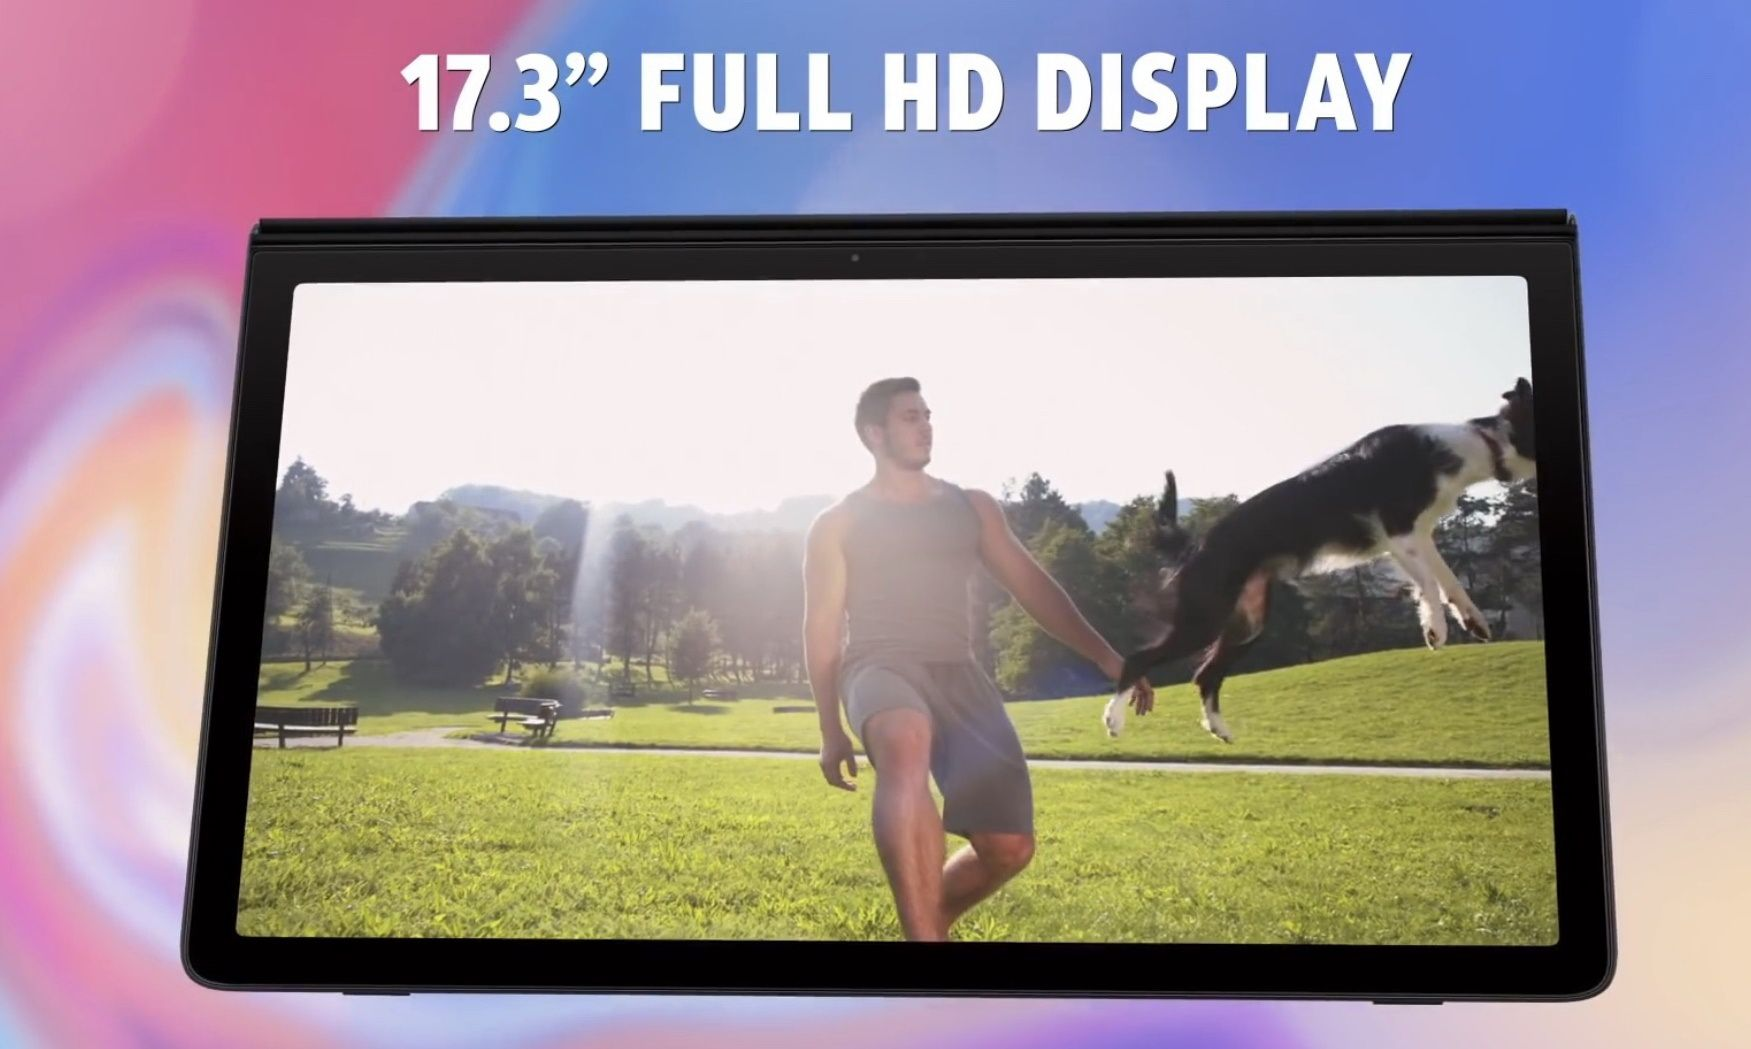 Samsung Galaxy View 2 Tablet Specification & Price In